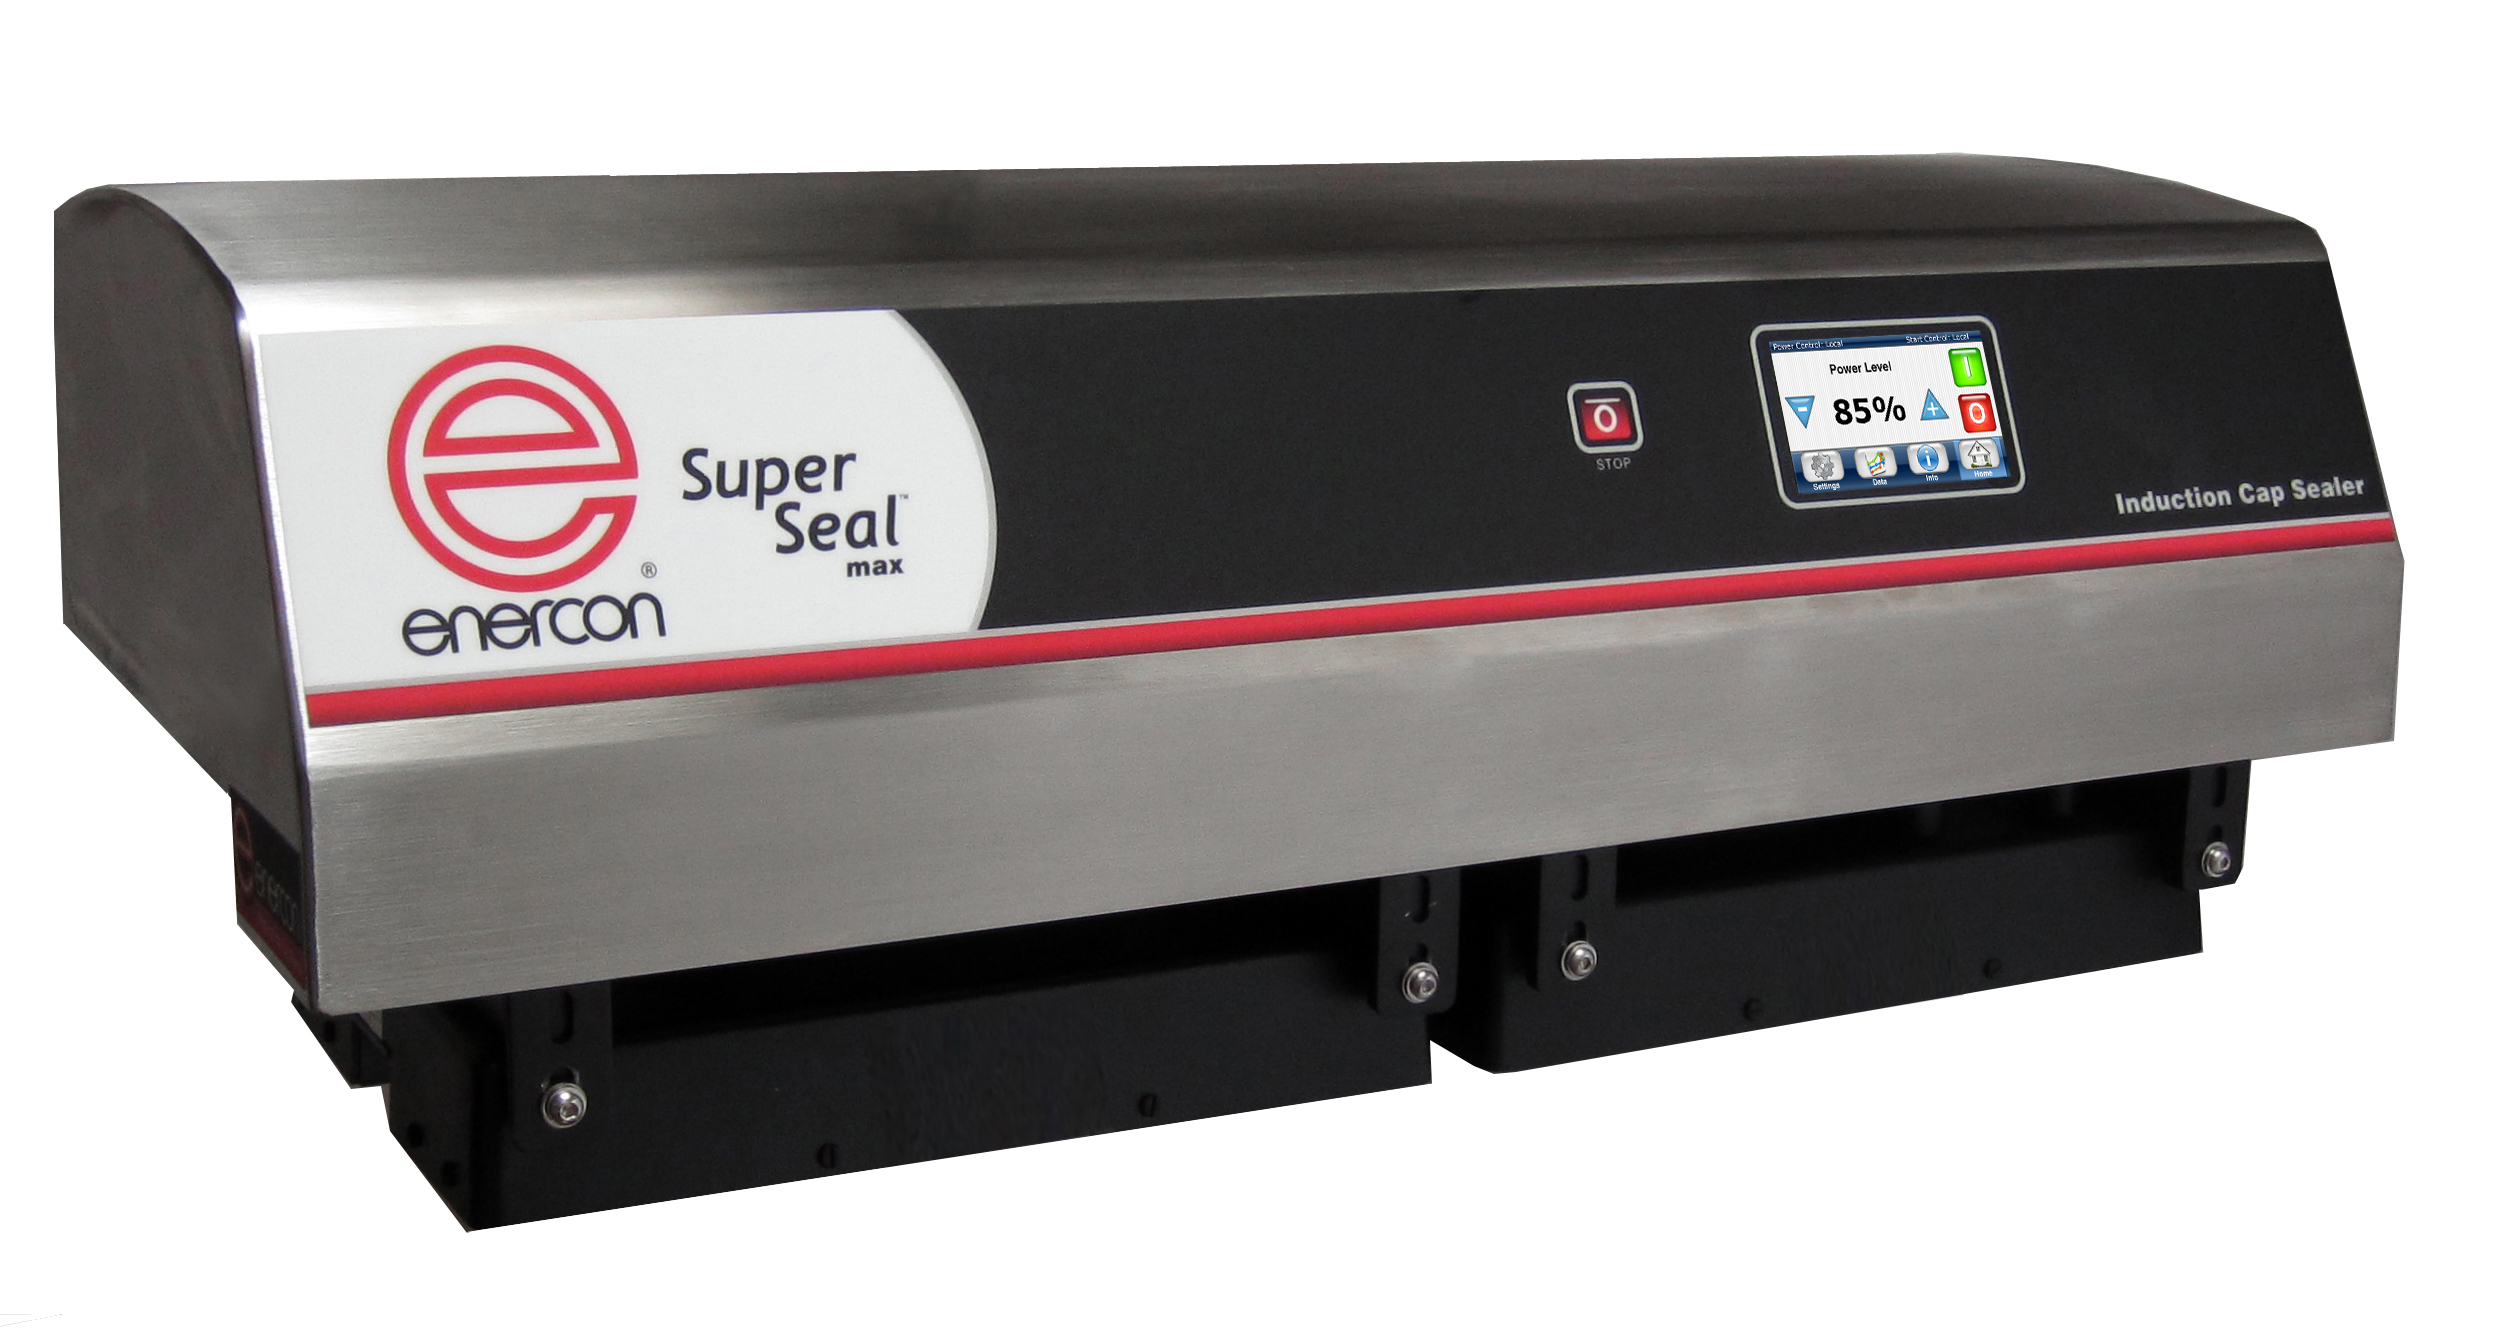 Enercon Super Seal Max Induction Sealer